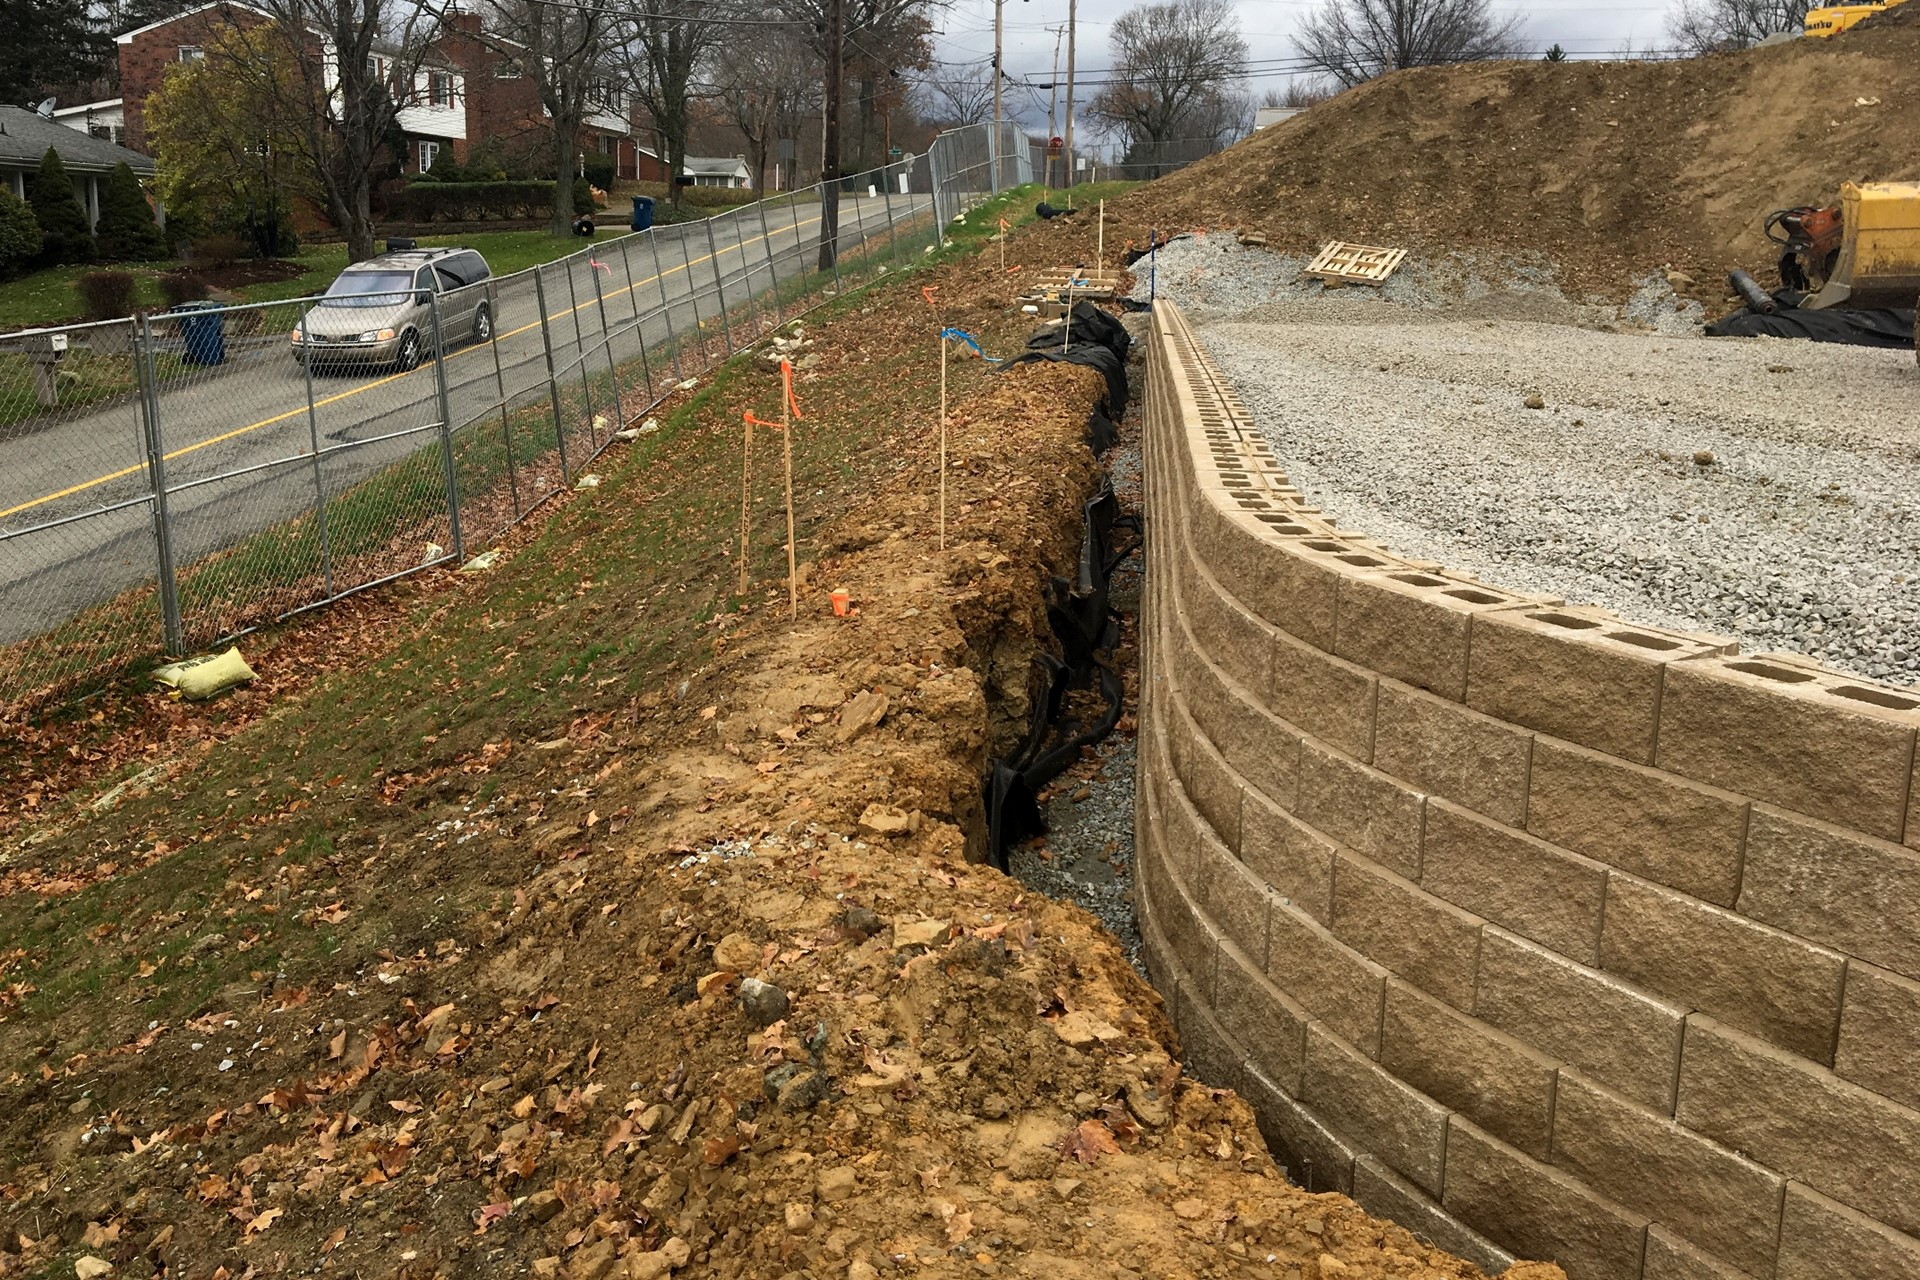 Retaining wall construction along Clare Street